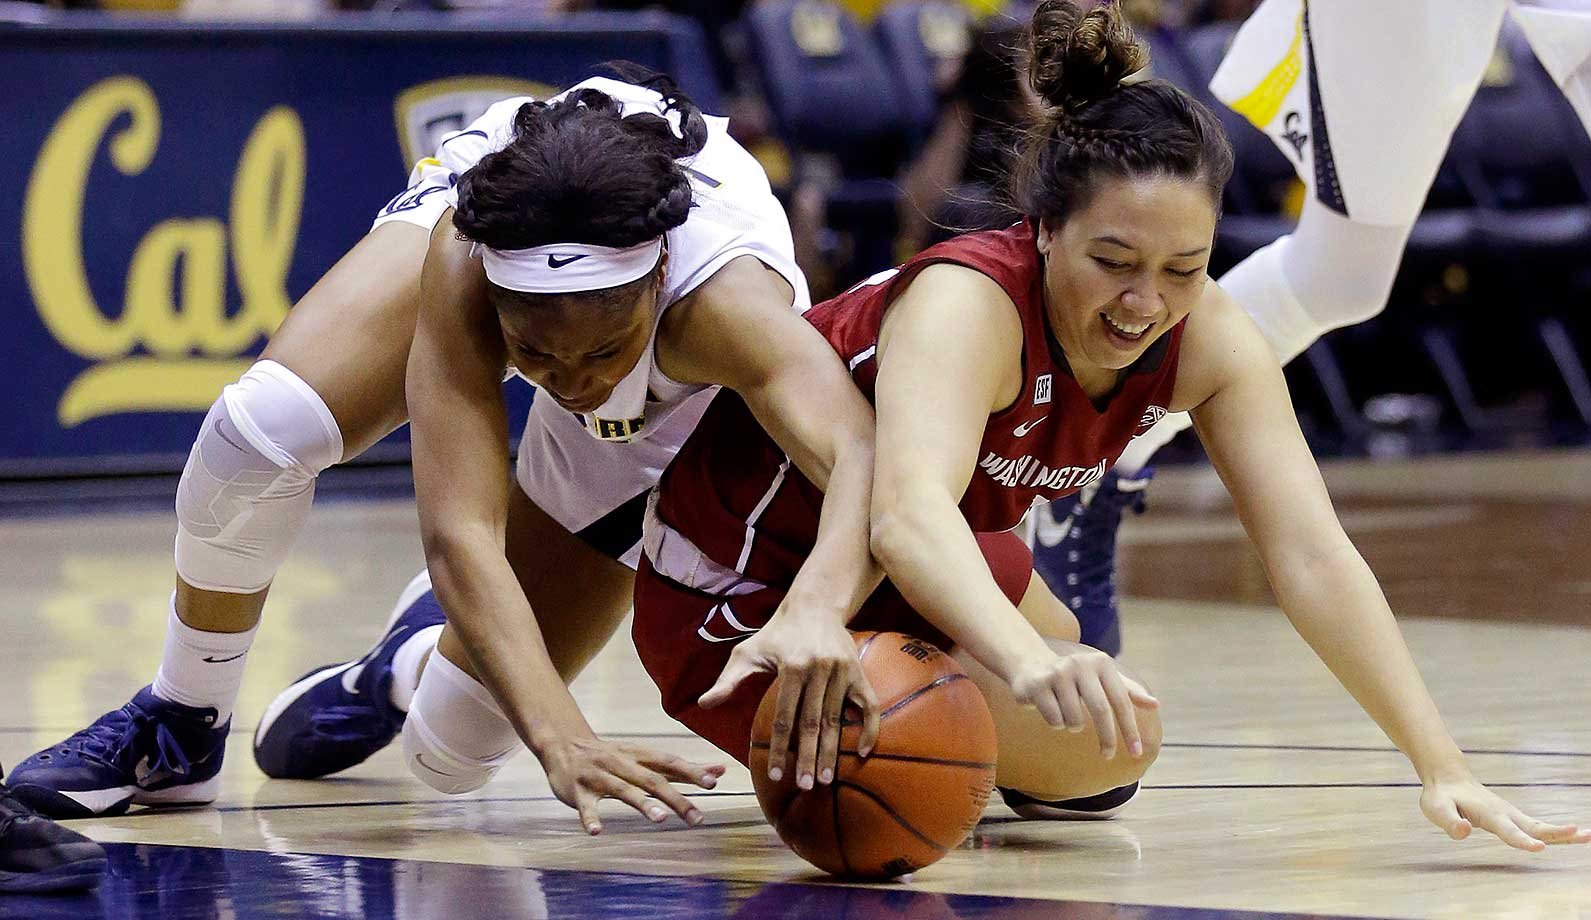 Washington State's Dawnyelle Awa, right, and California's Kristine Anigwe dive for the ball in Berkeley, Calif.